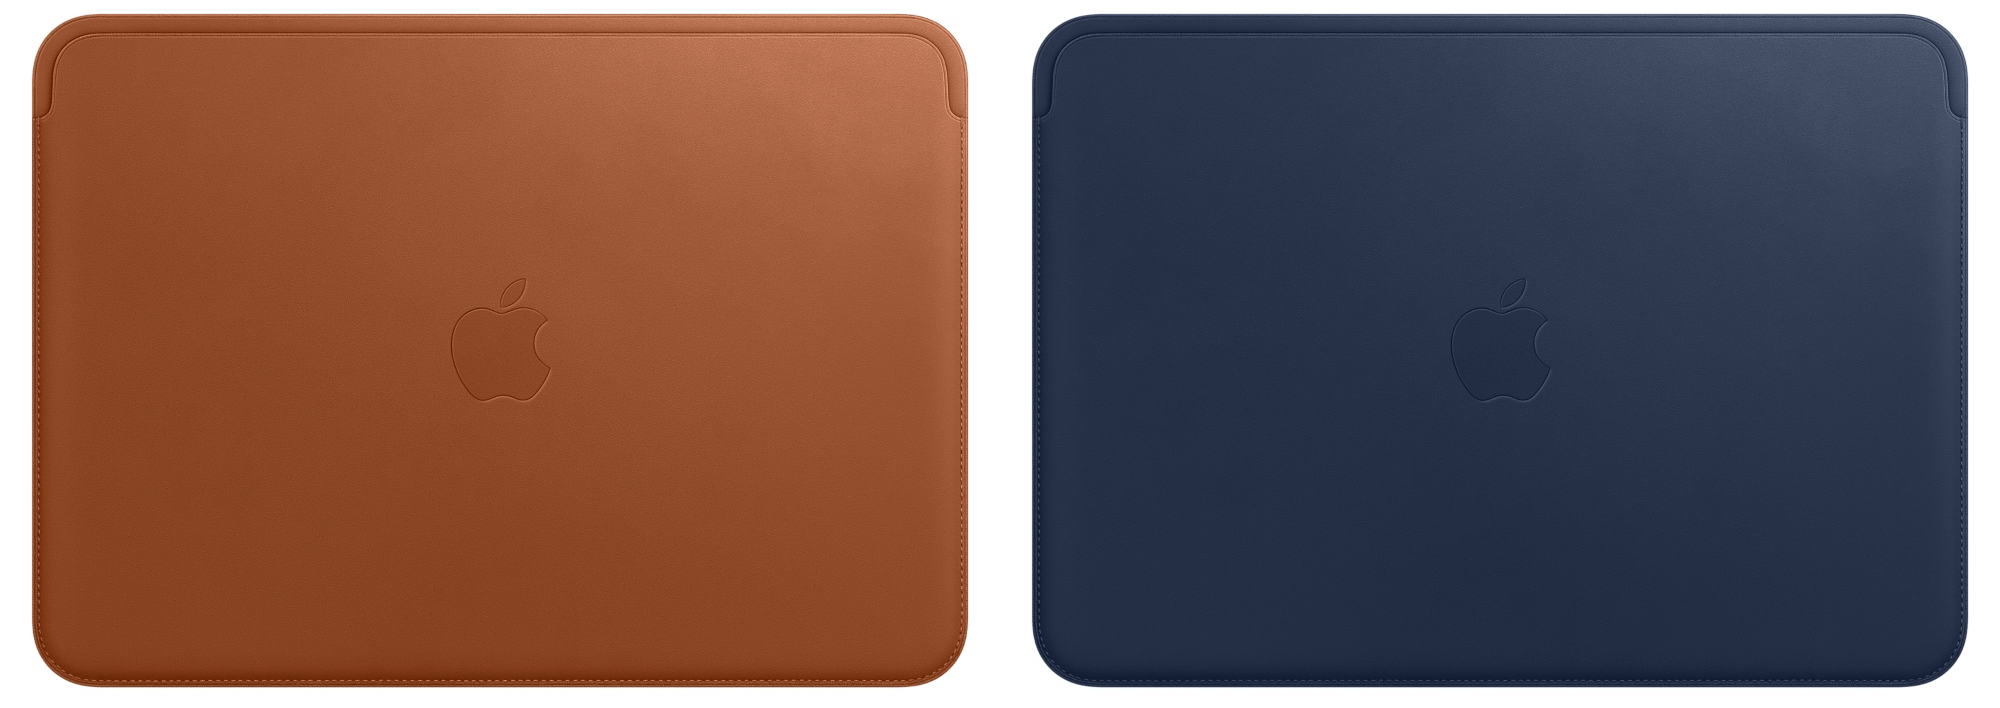 4bc24231b44 Apple komt met eigen MacBook sleeve » One More Thing